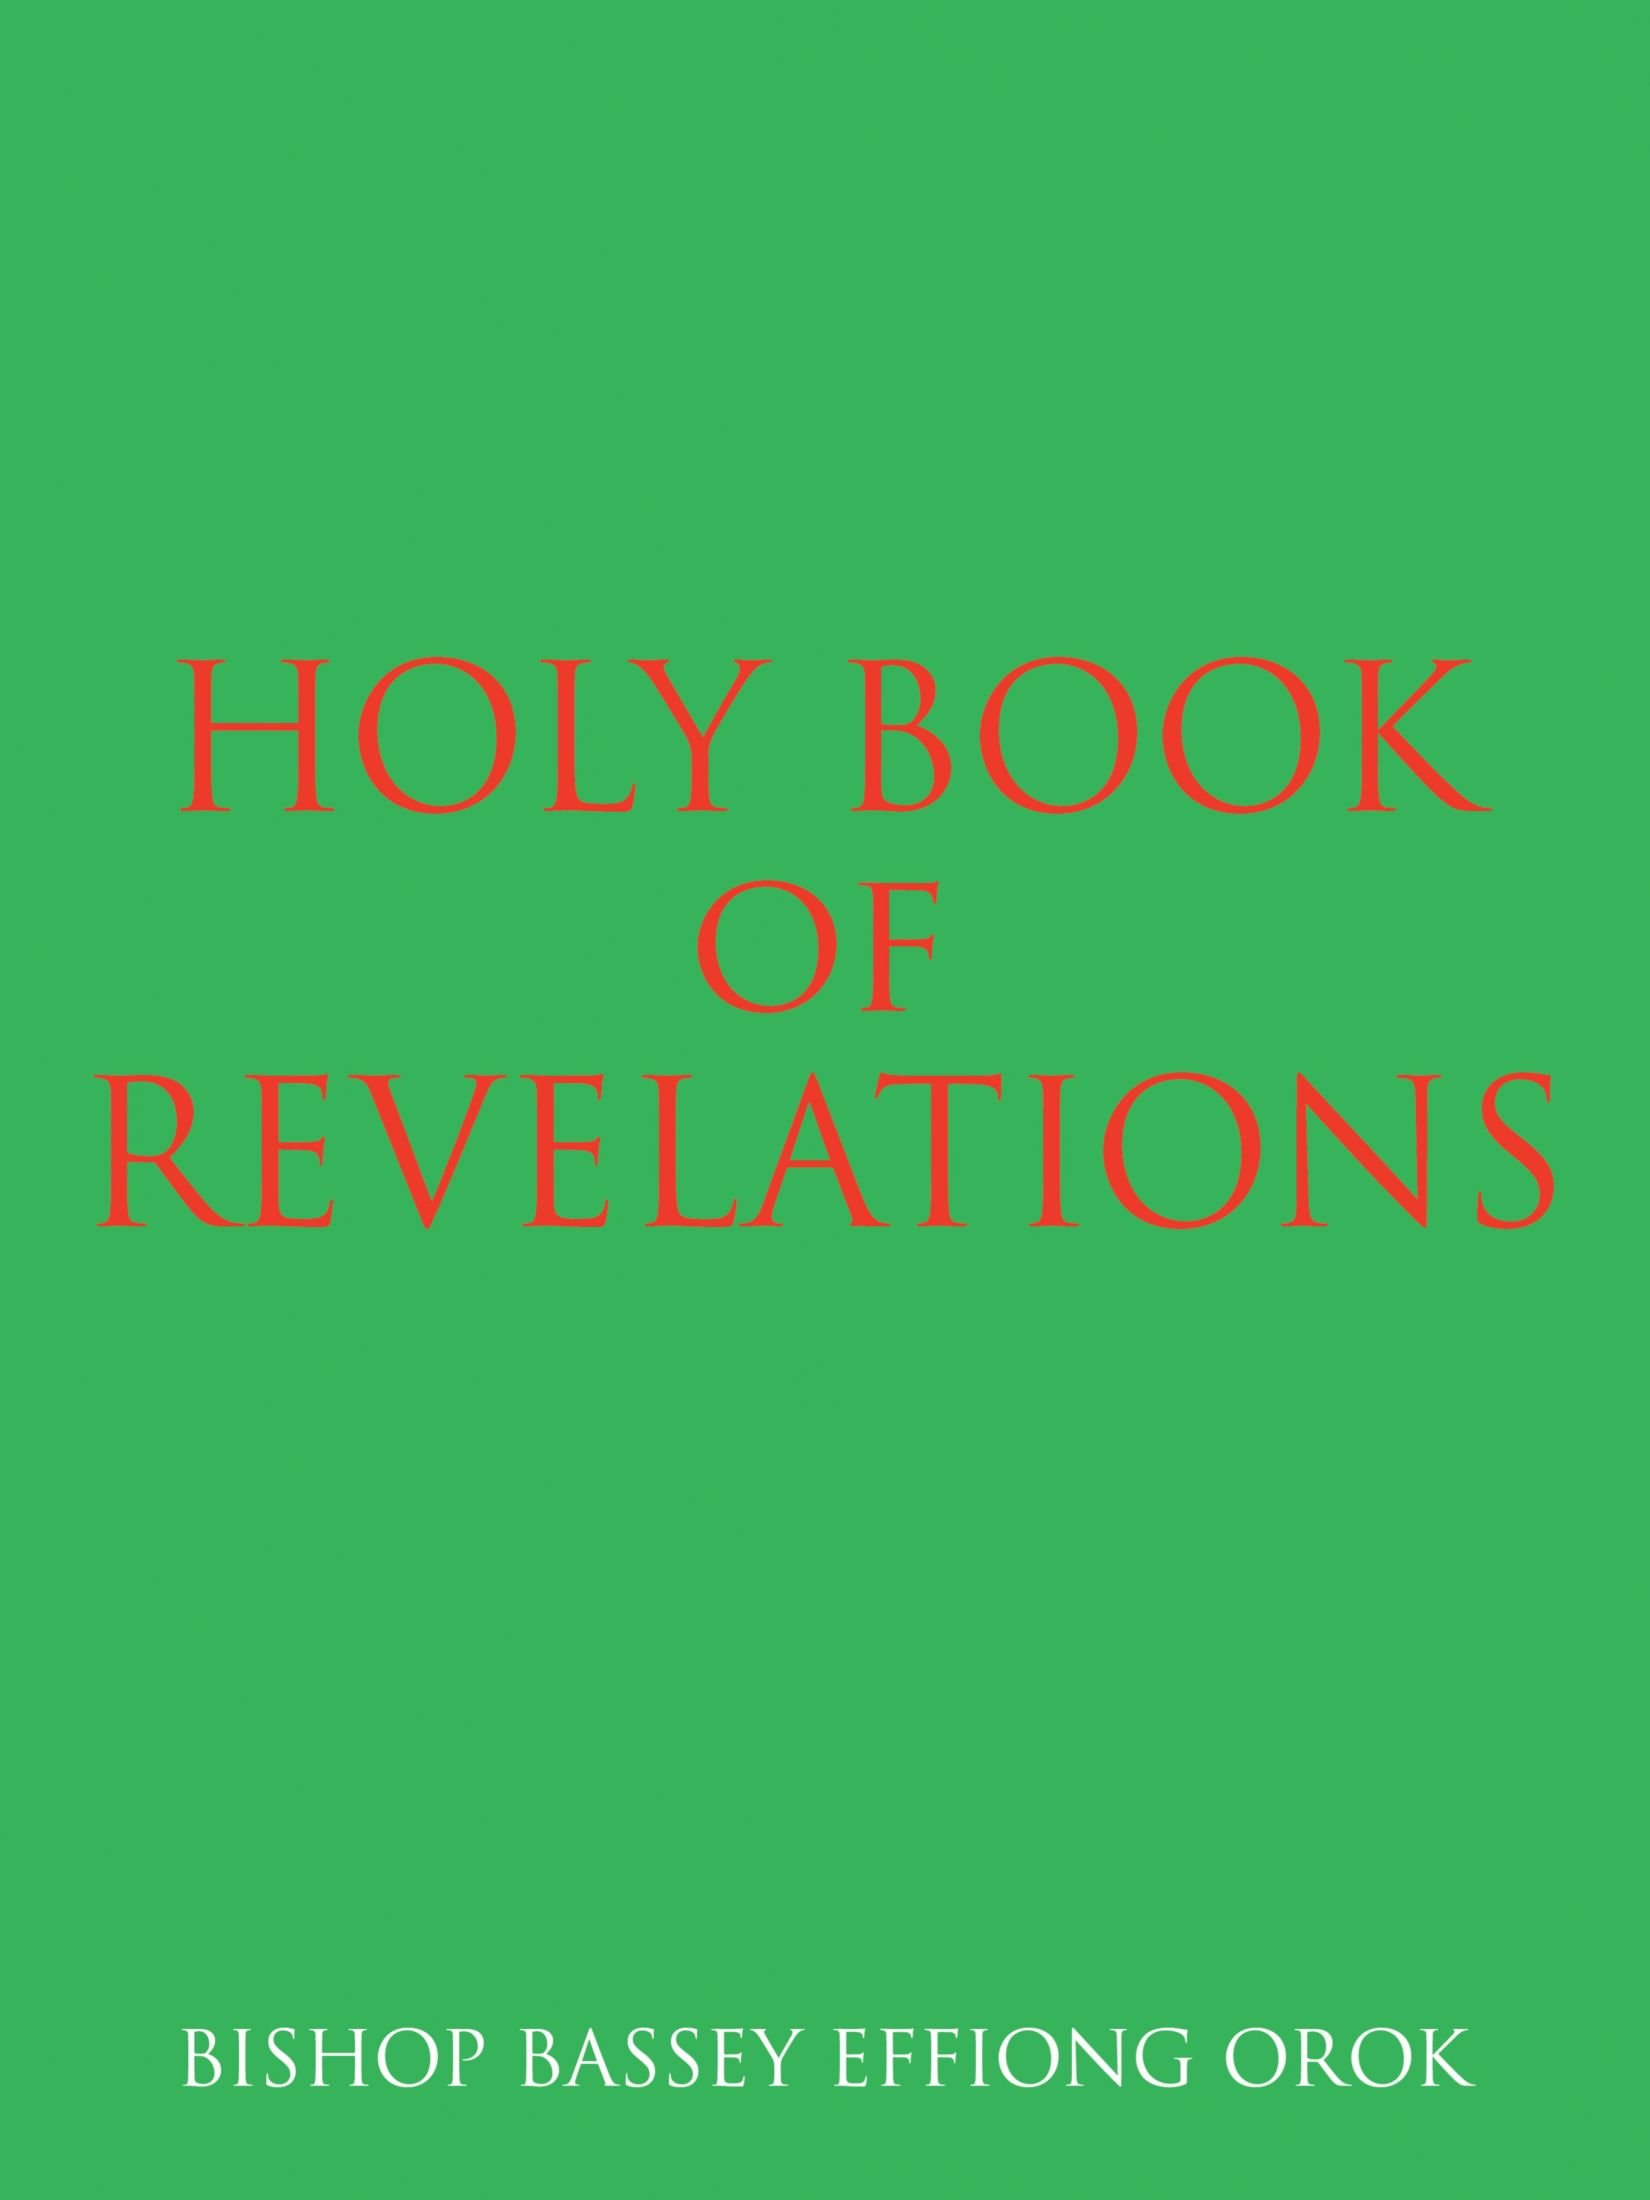 Download Holy Book of Revelations PDF